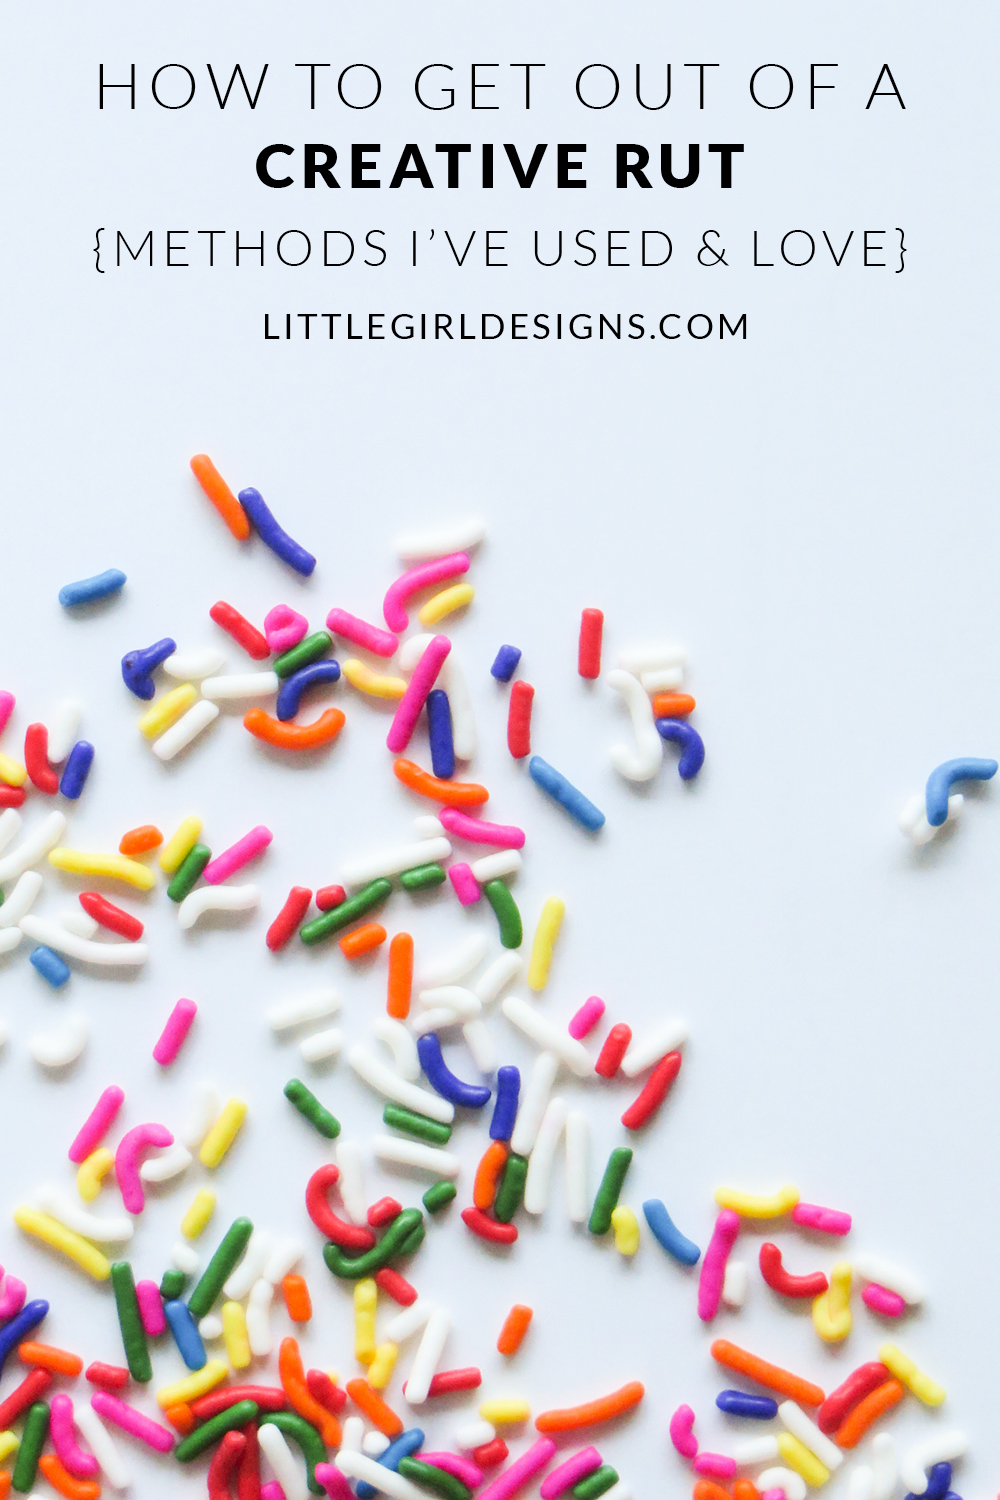 How to Get Out of a Creative Rut - Methods I've used and love. Don't you hate falling into a creative rut? You want to make stuff but feel overwhelmed, uninspired, or worse, bored. I'm sharing some techniques and tips I've tried and think they'll help you! via littlegirldesigns.com